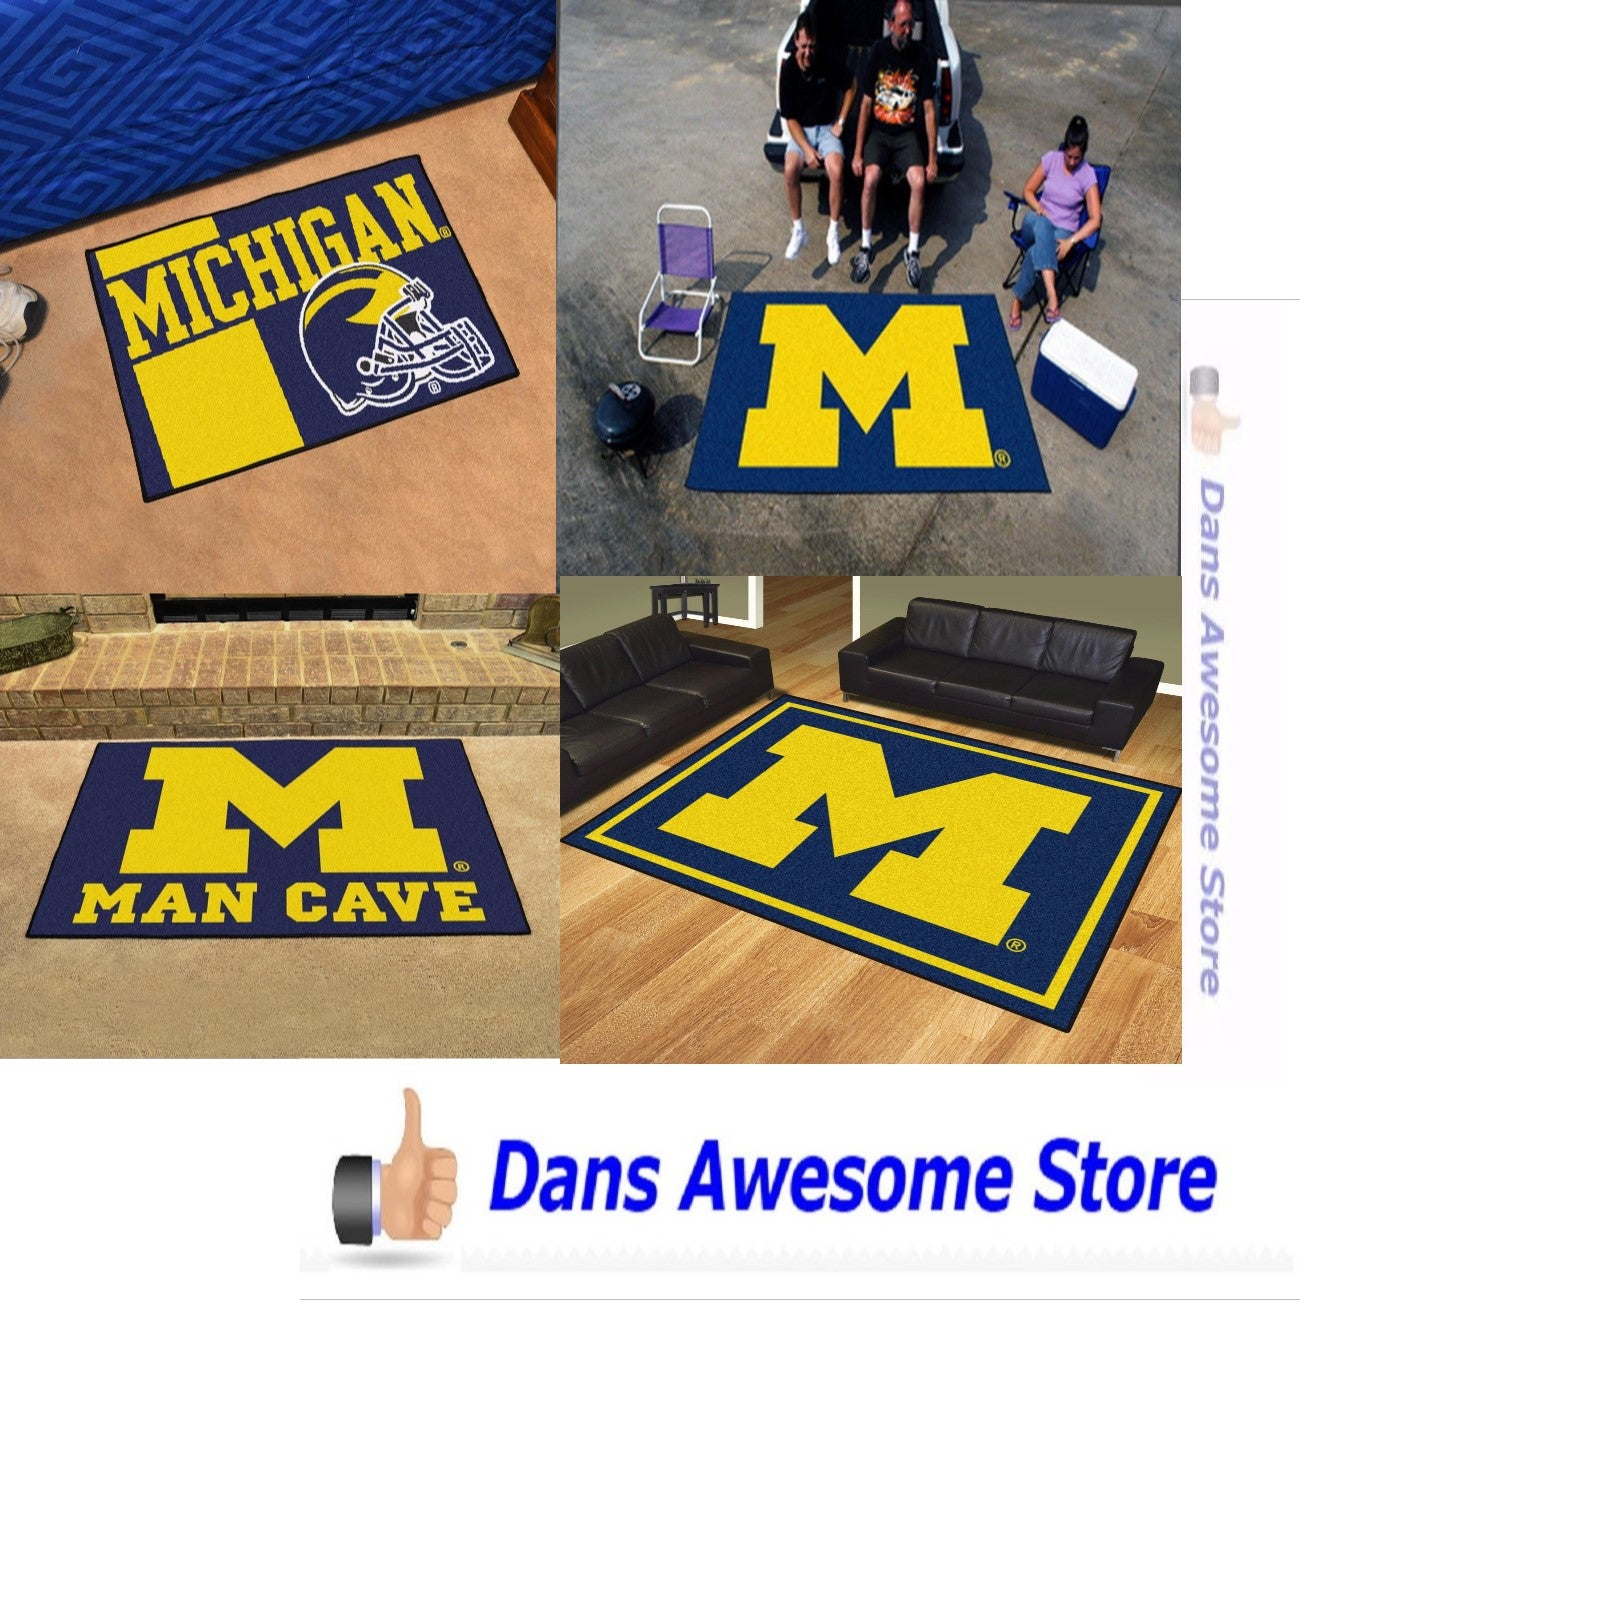 Michigan Wolverines Rug - Dans Awesome Store